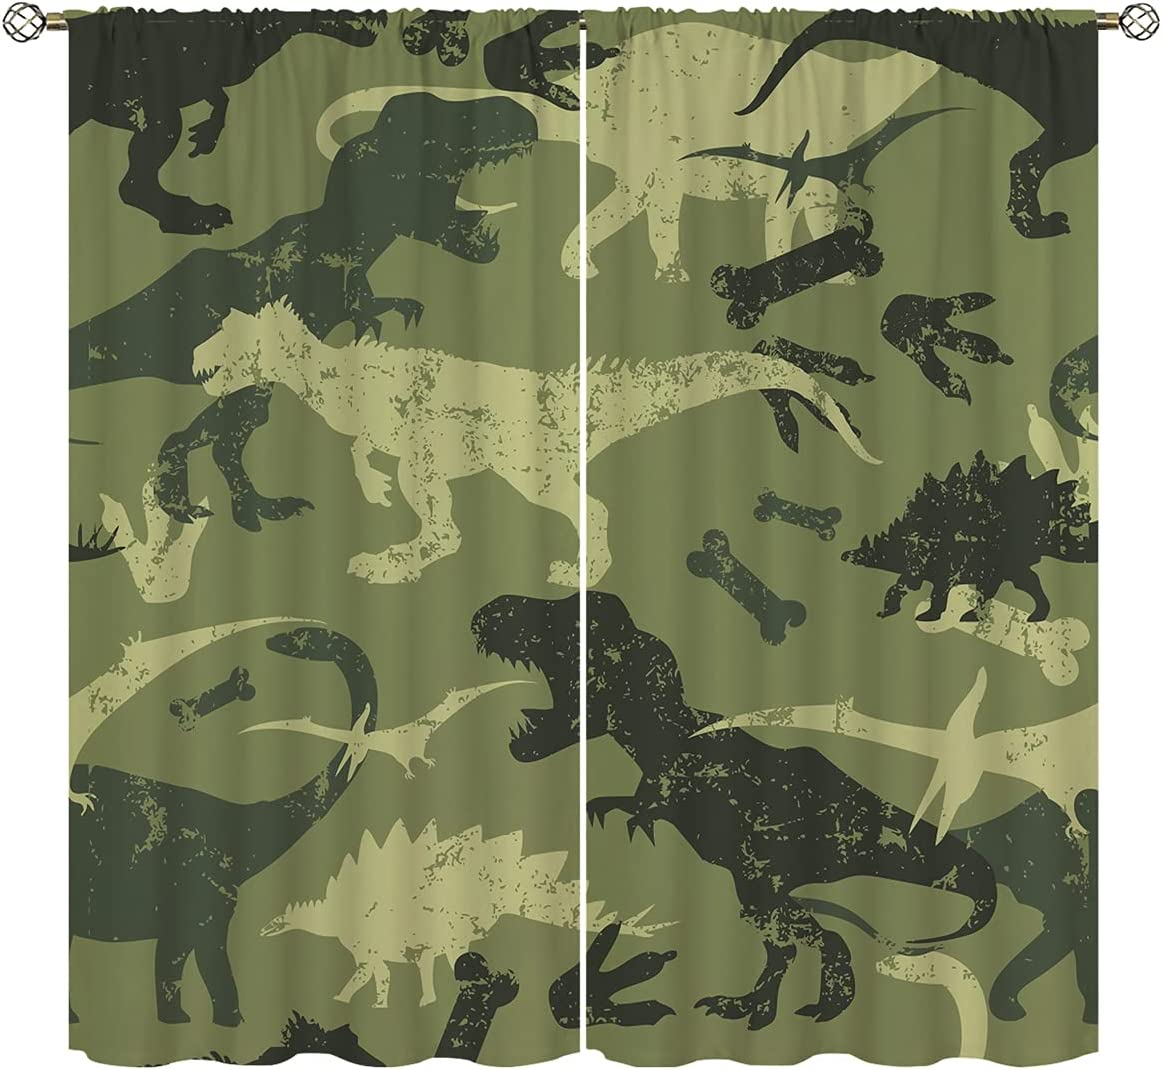 Camo Army Green Blackout Curtains Home Decor,Camouflage Cat Butterfly Star Dinosaur Airplan Rod Pocket Thermal Insulated Drapes Darkening Window Curtain for Girls Boy Bedroom Living Room 42 x 63 Inch